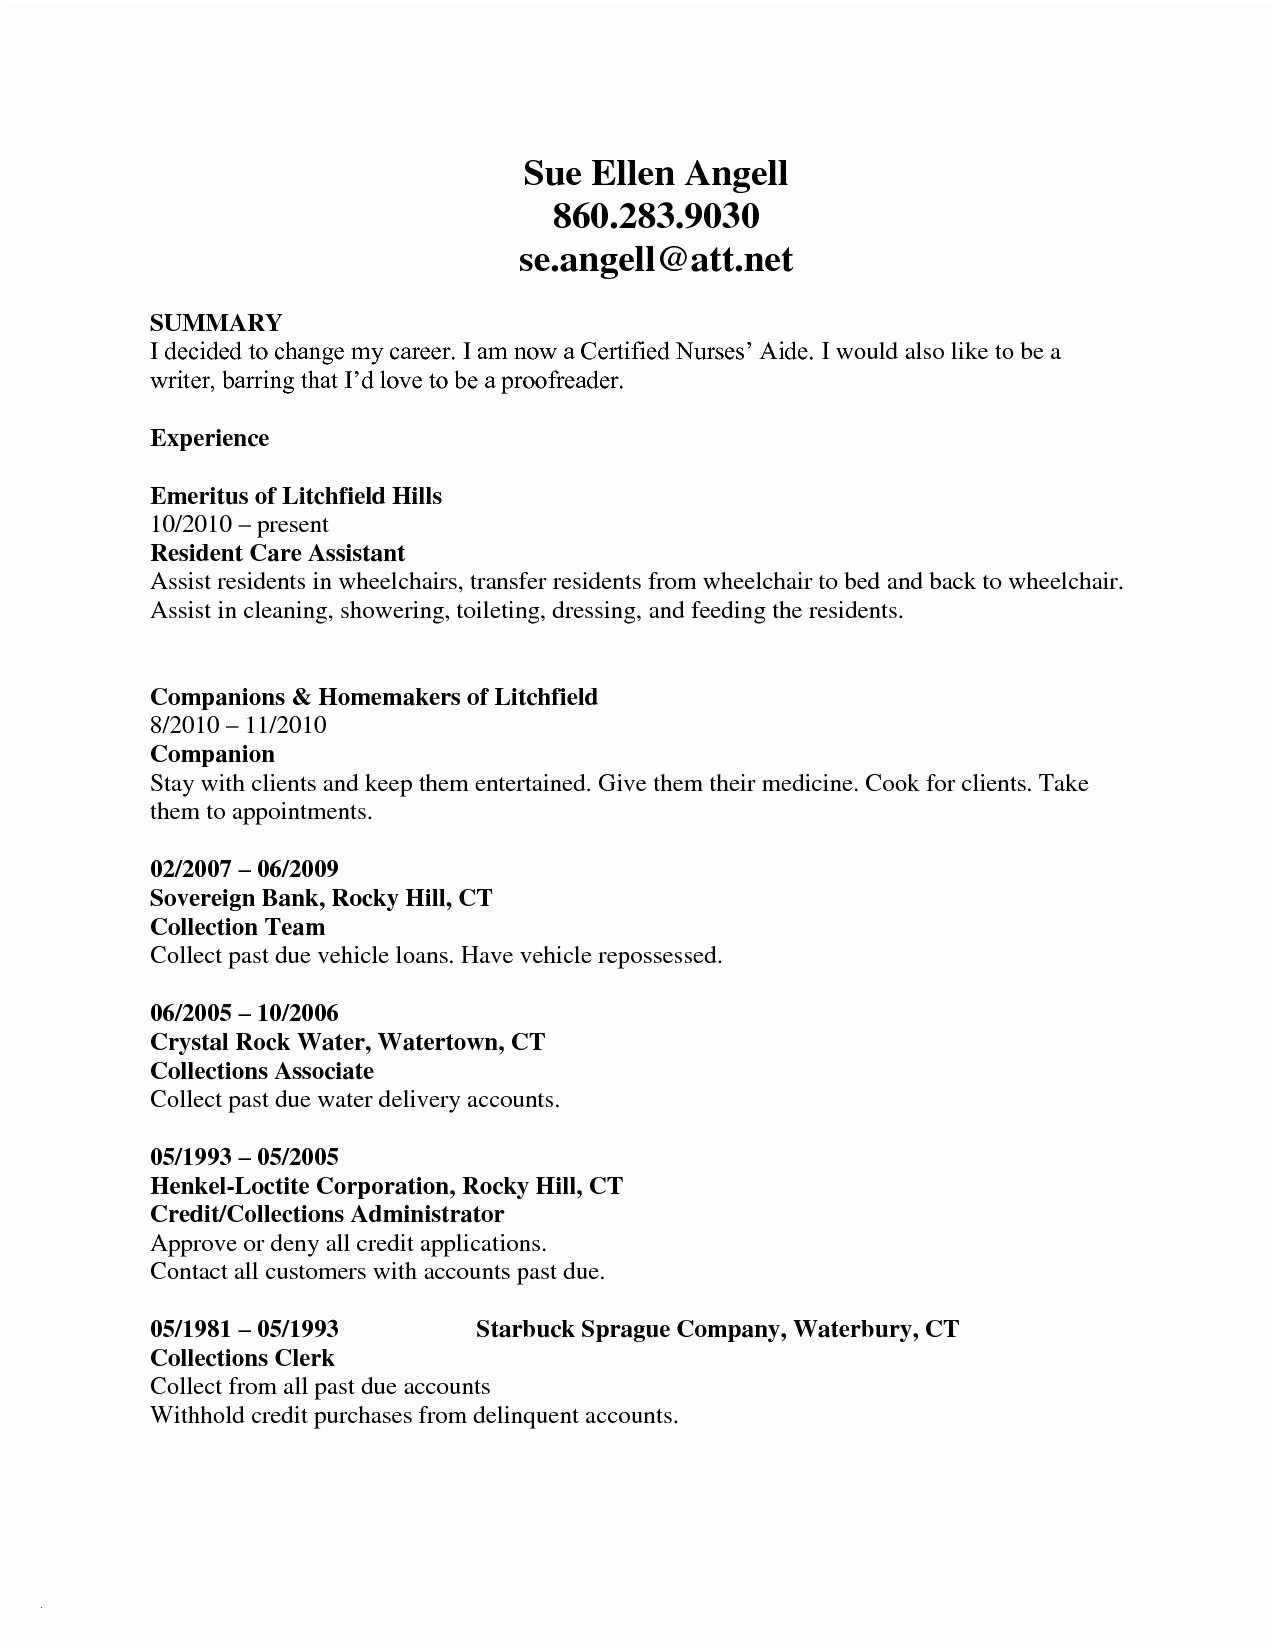 Nursing Resume Template Microsoft Word - Nursing Resume Template Word Best Nursing Resume Templates Word